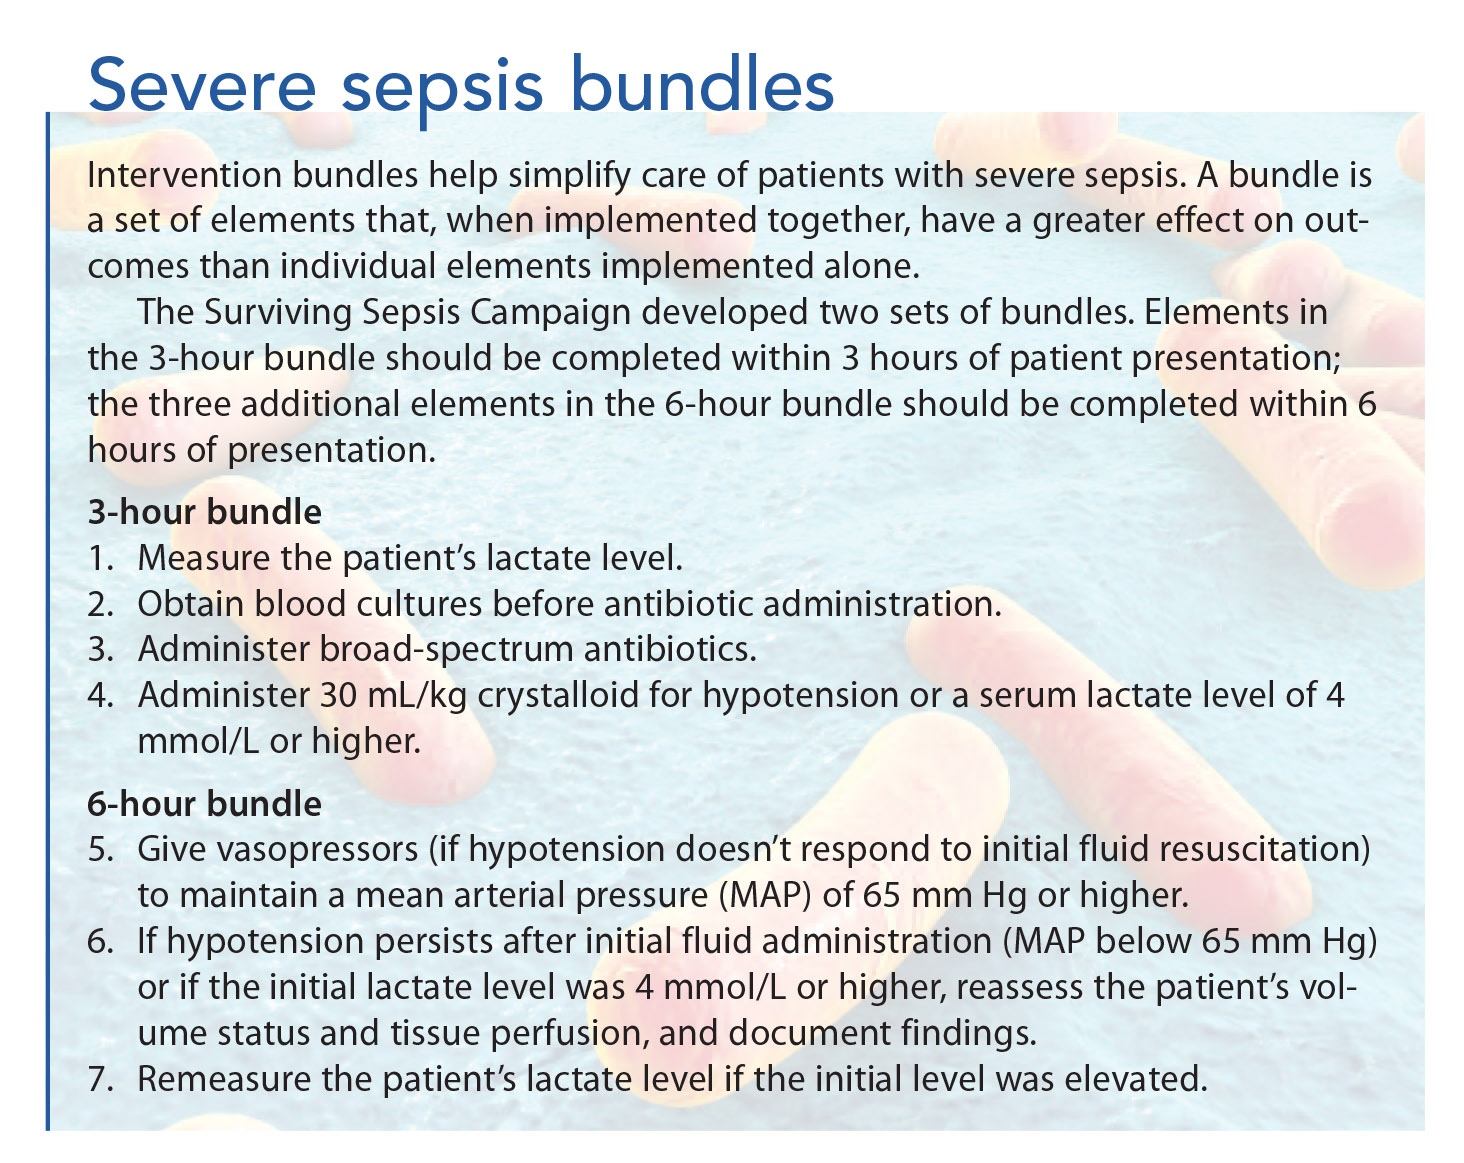 Nurses Can Help Improve Outcomes In Severe Sepsis